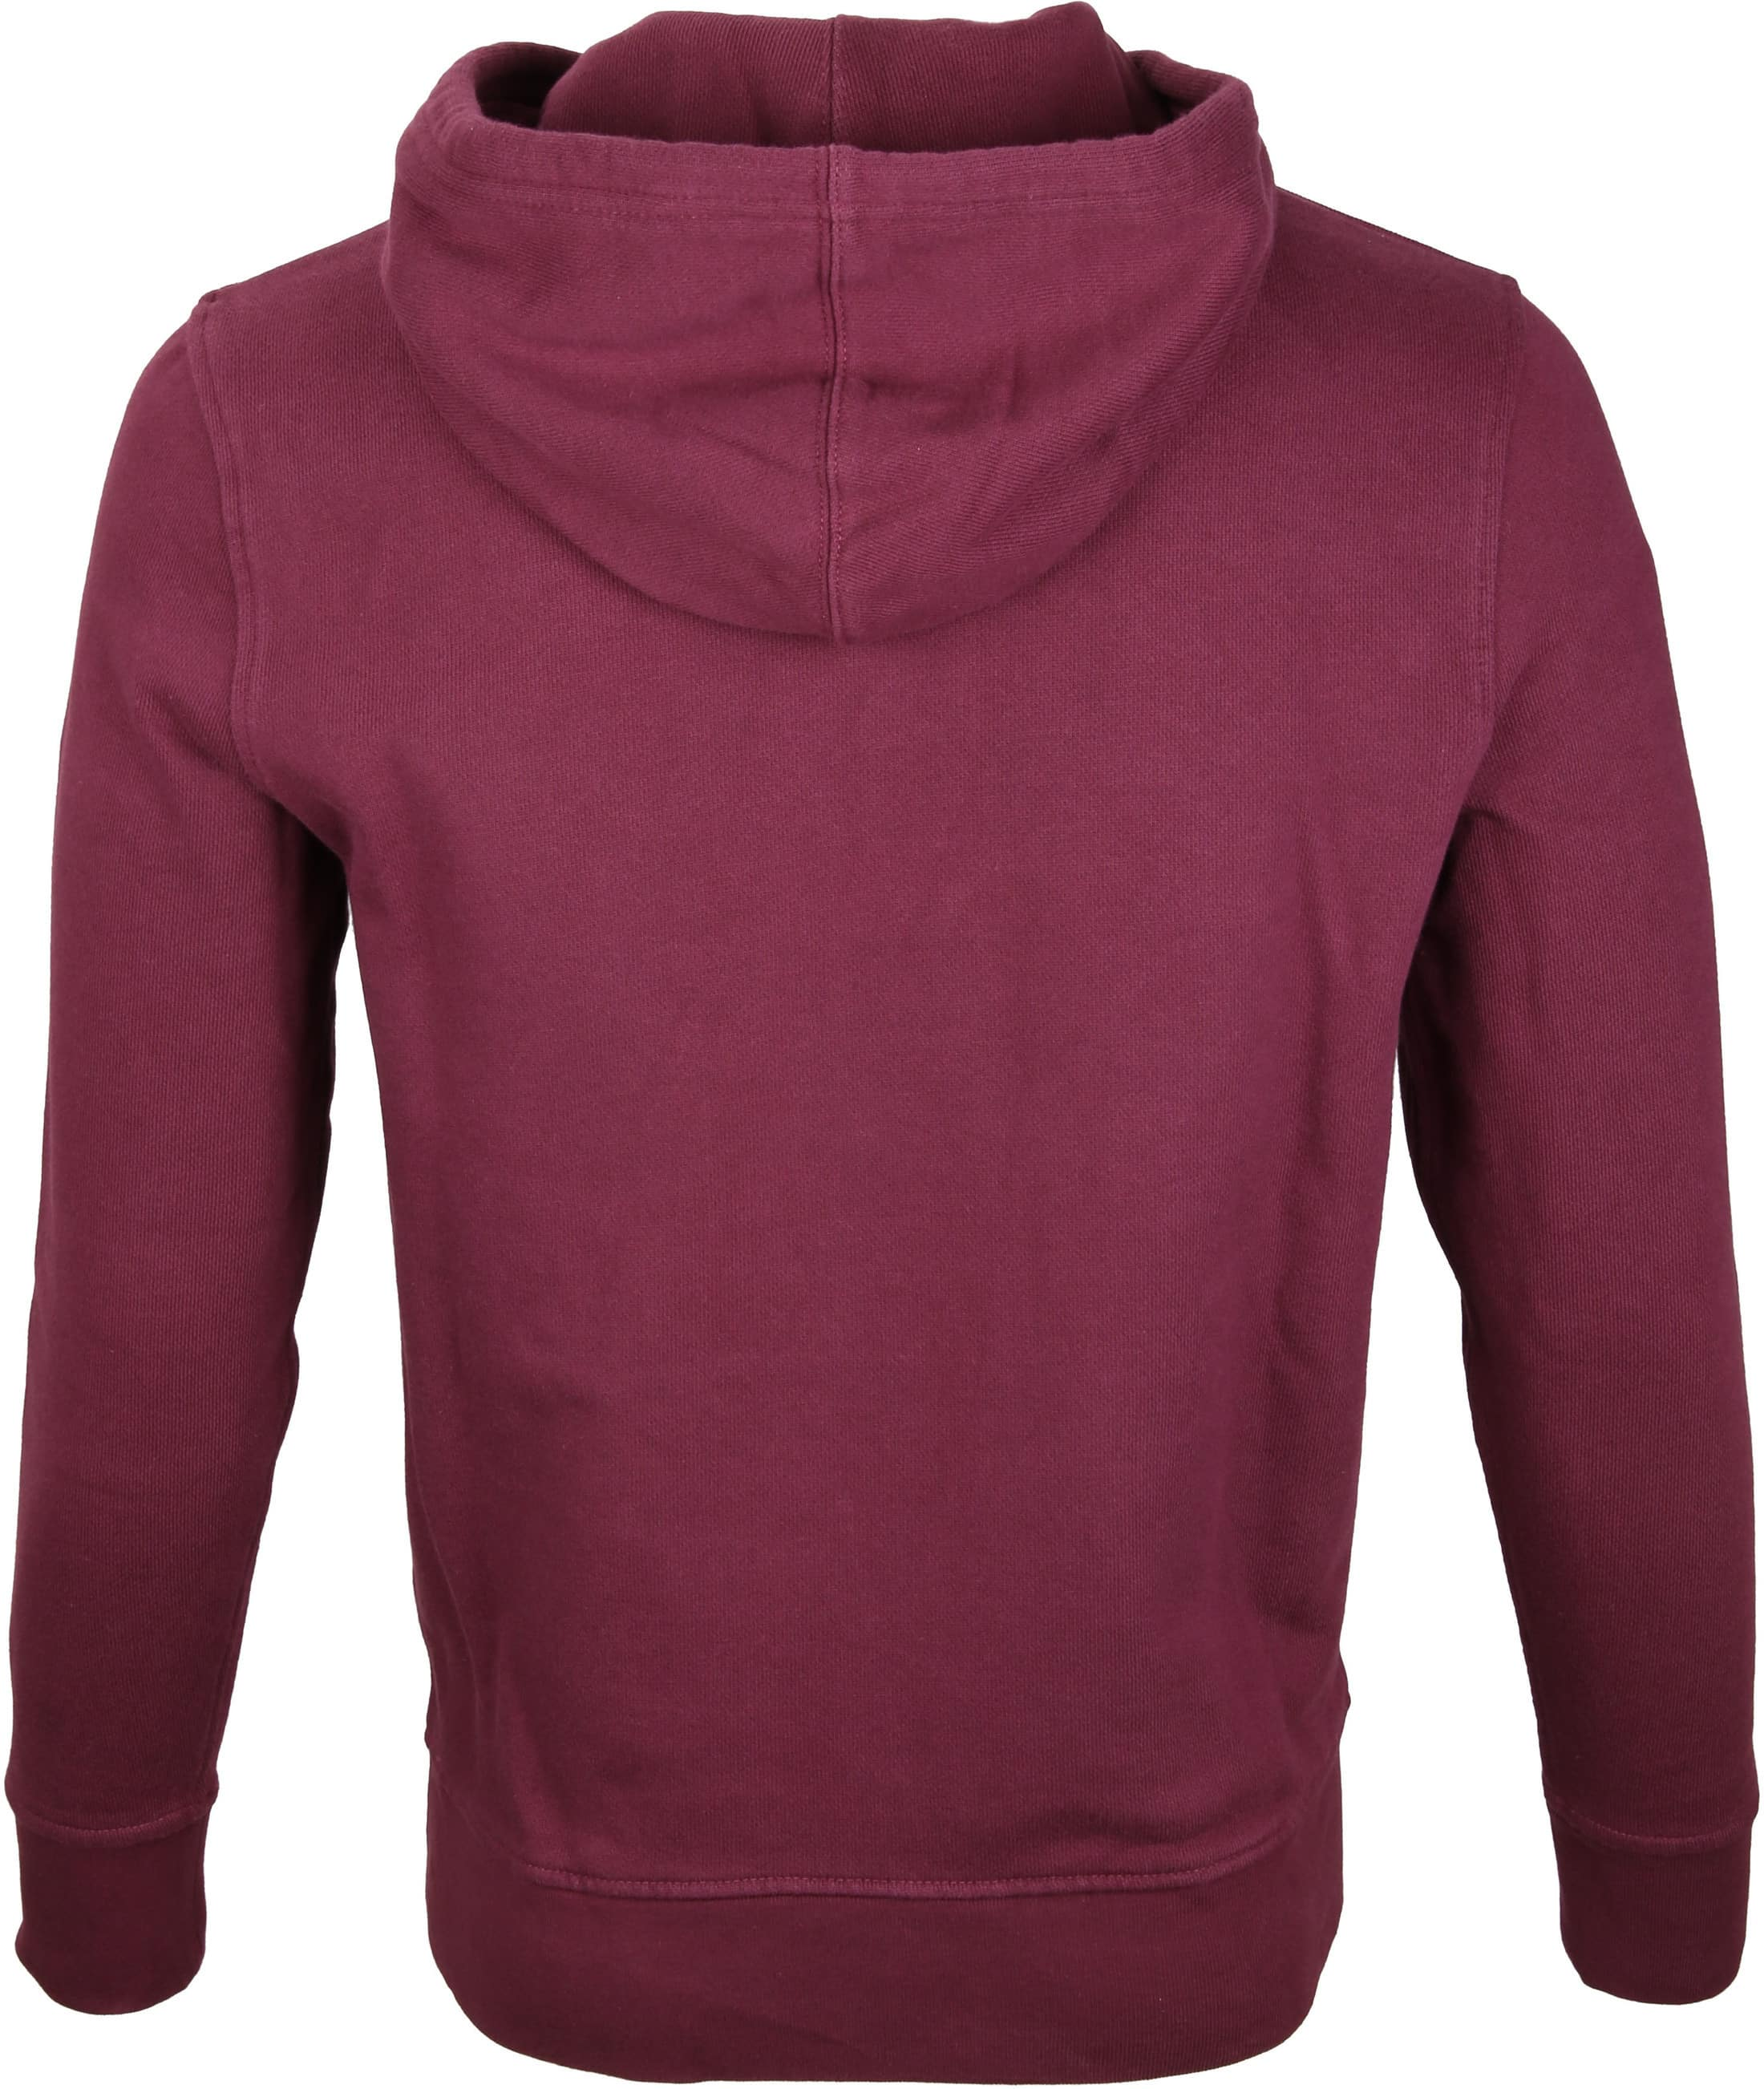 Levi's Sweater Captain Bordeaux foto 2